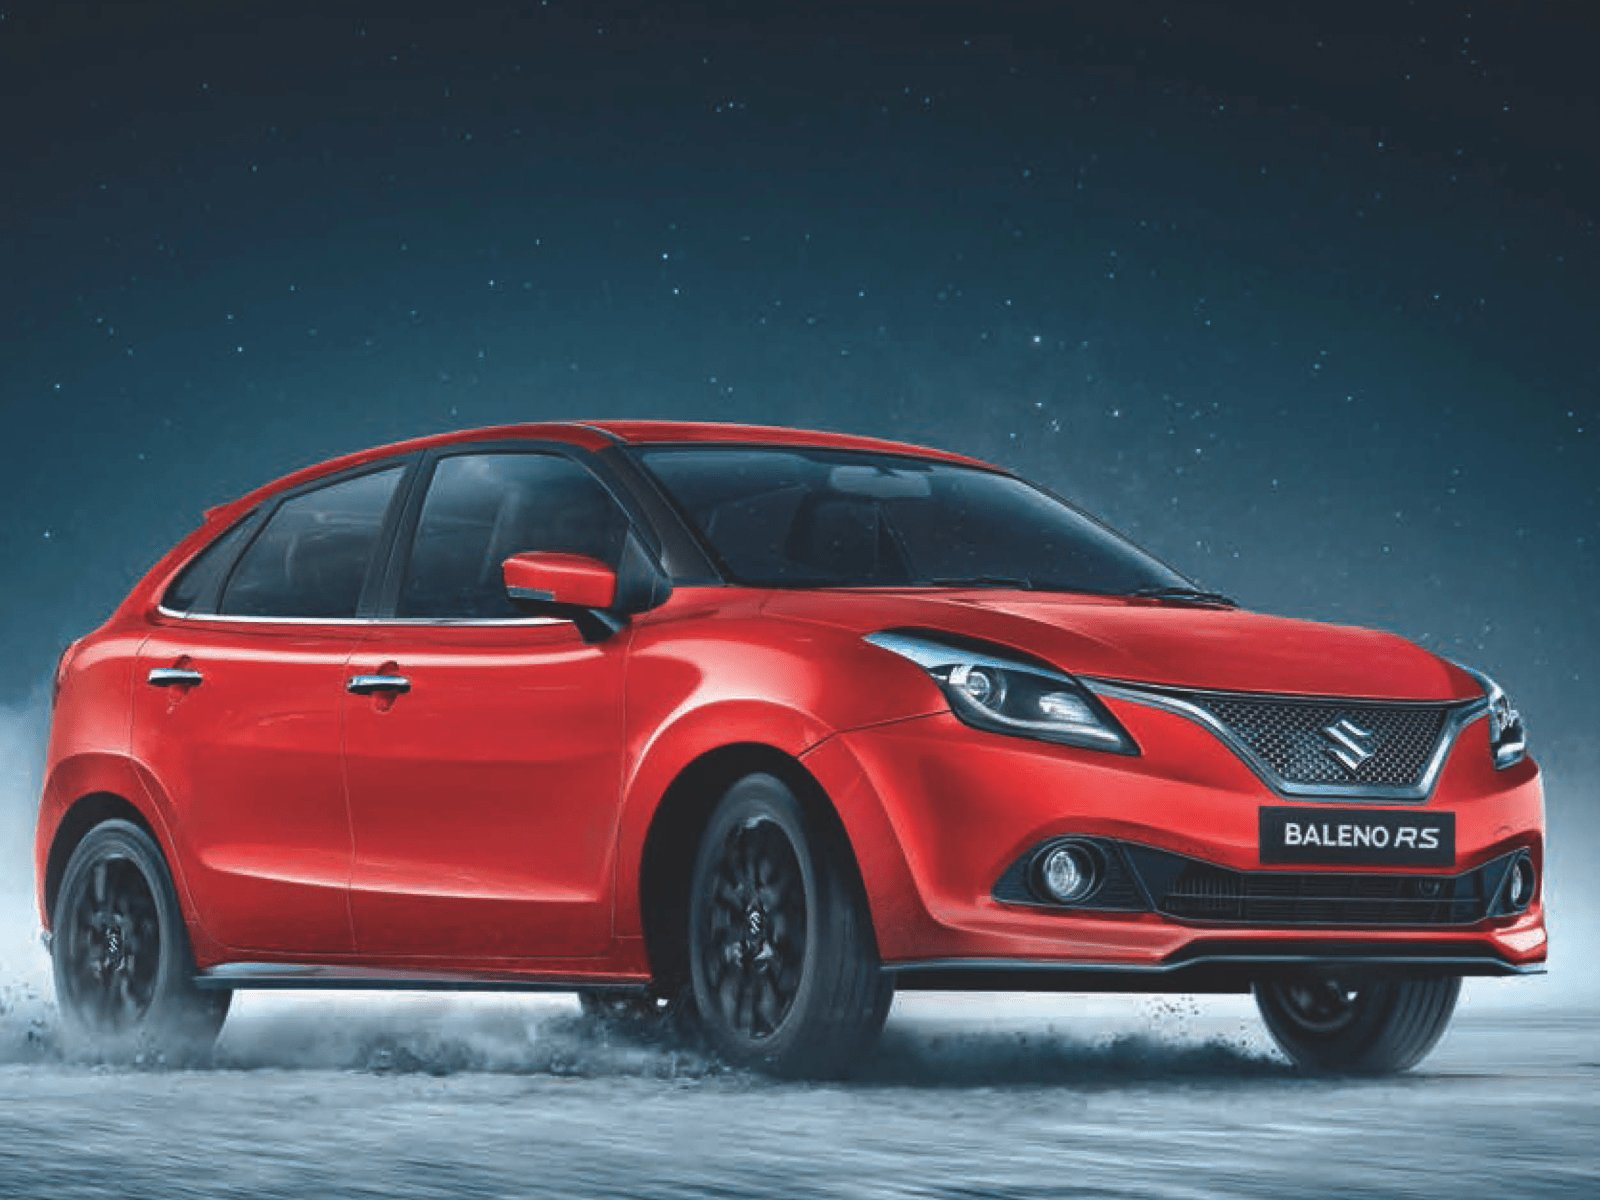 Latest Maruti Suzuki Baleno Wallpapers Free Download